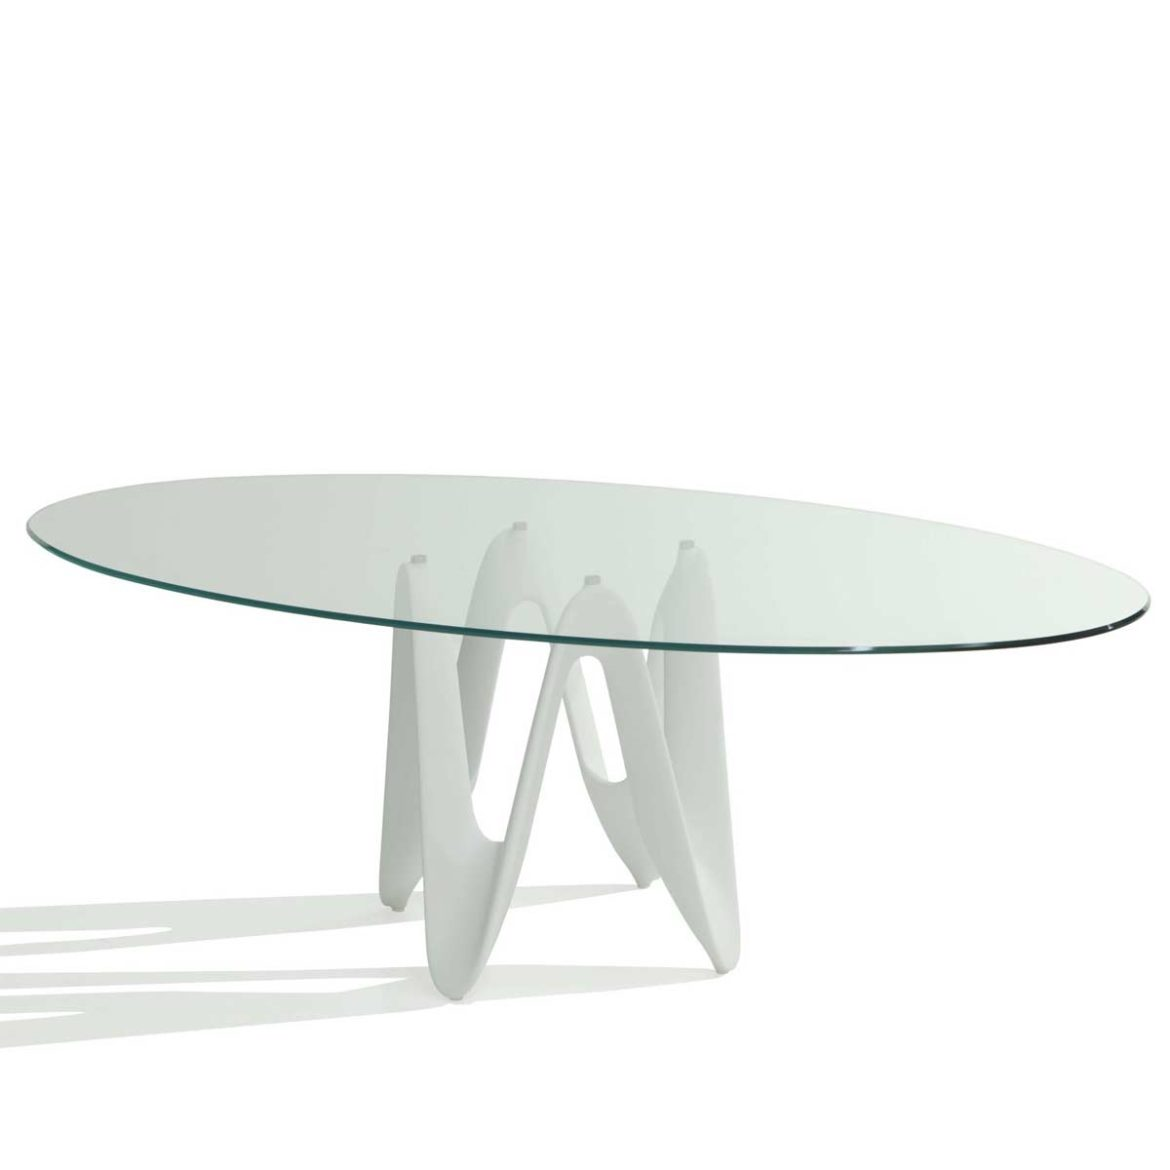 Oval glass dining table lambda klarity glass furniture